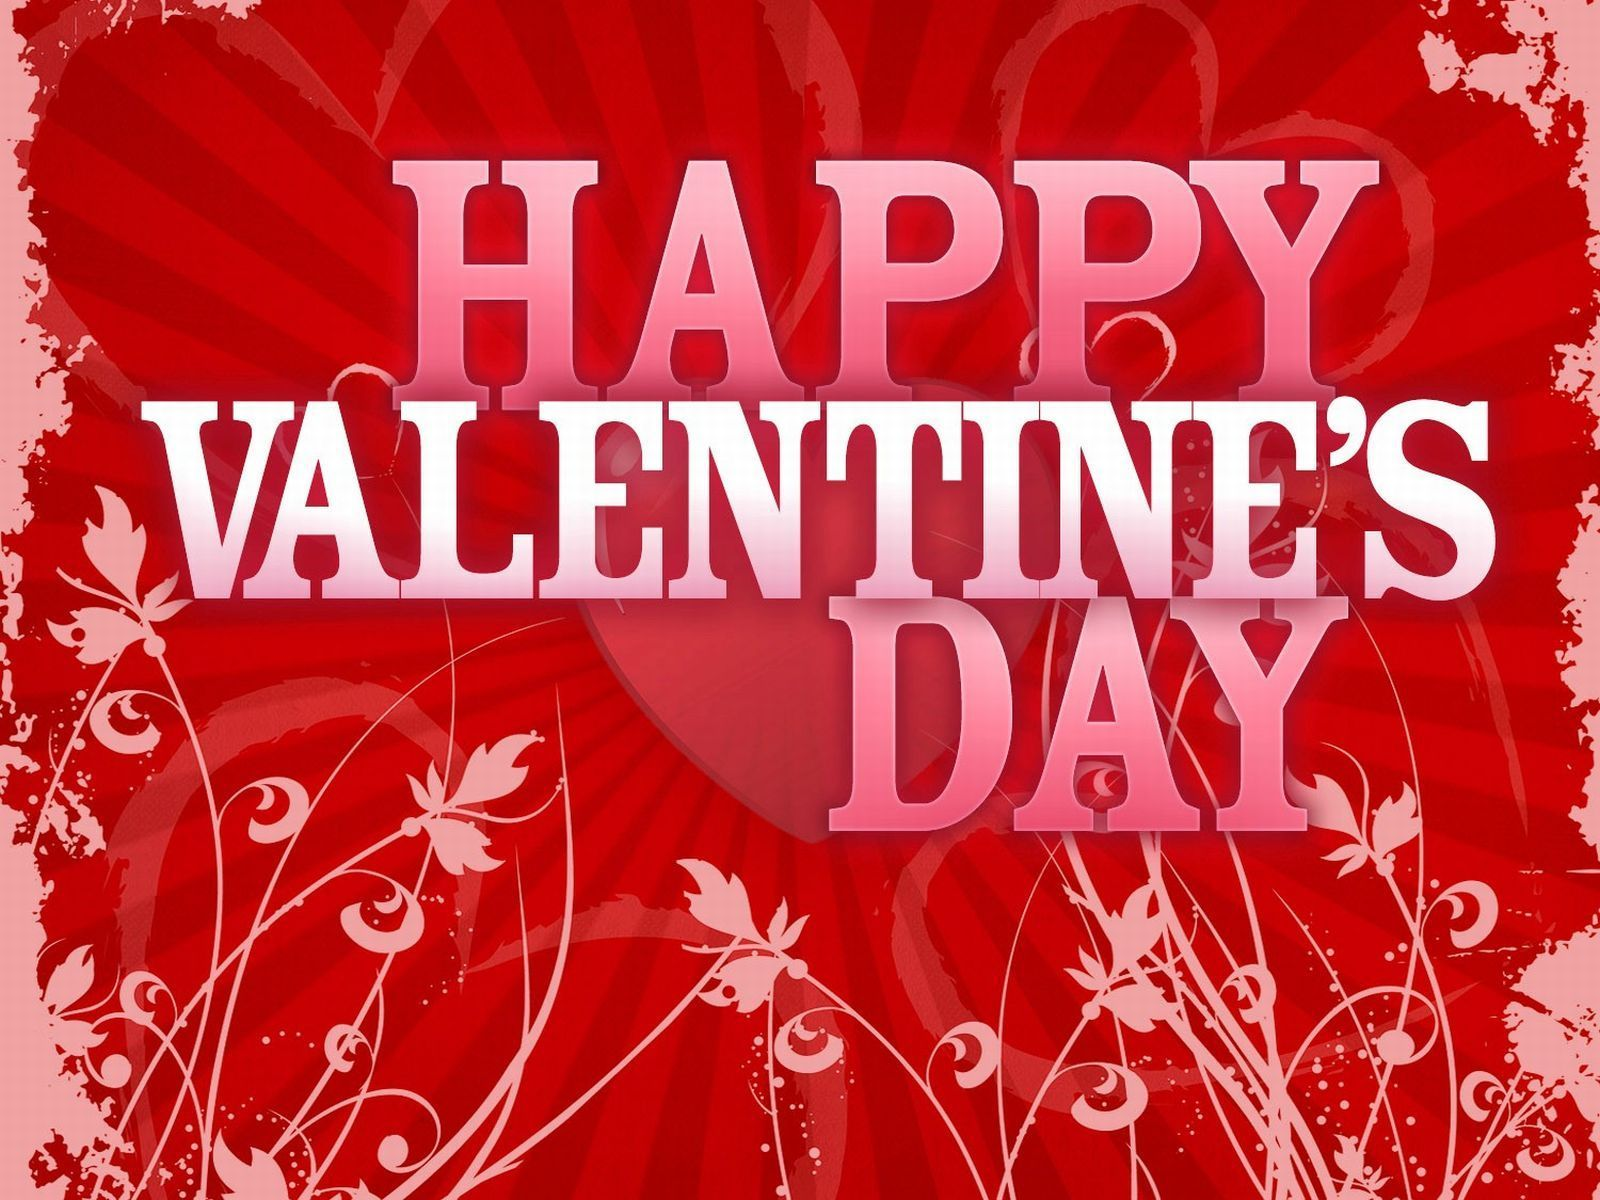 35 Bing Valentine Wallpapers   Download at WallpaperBro 1600x1200